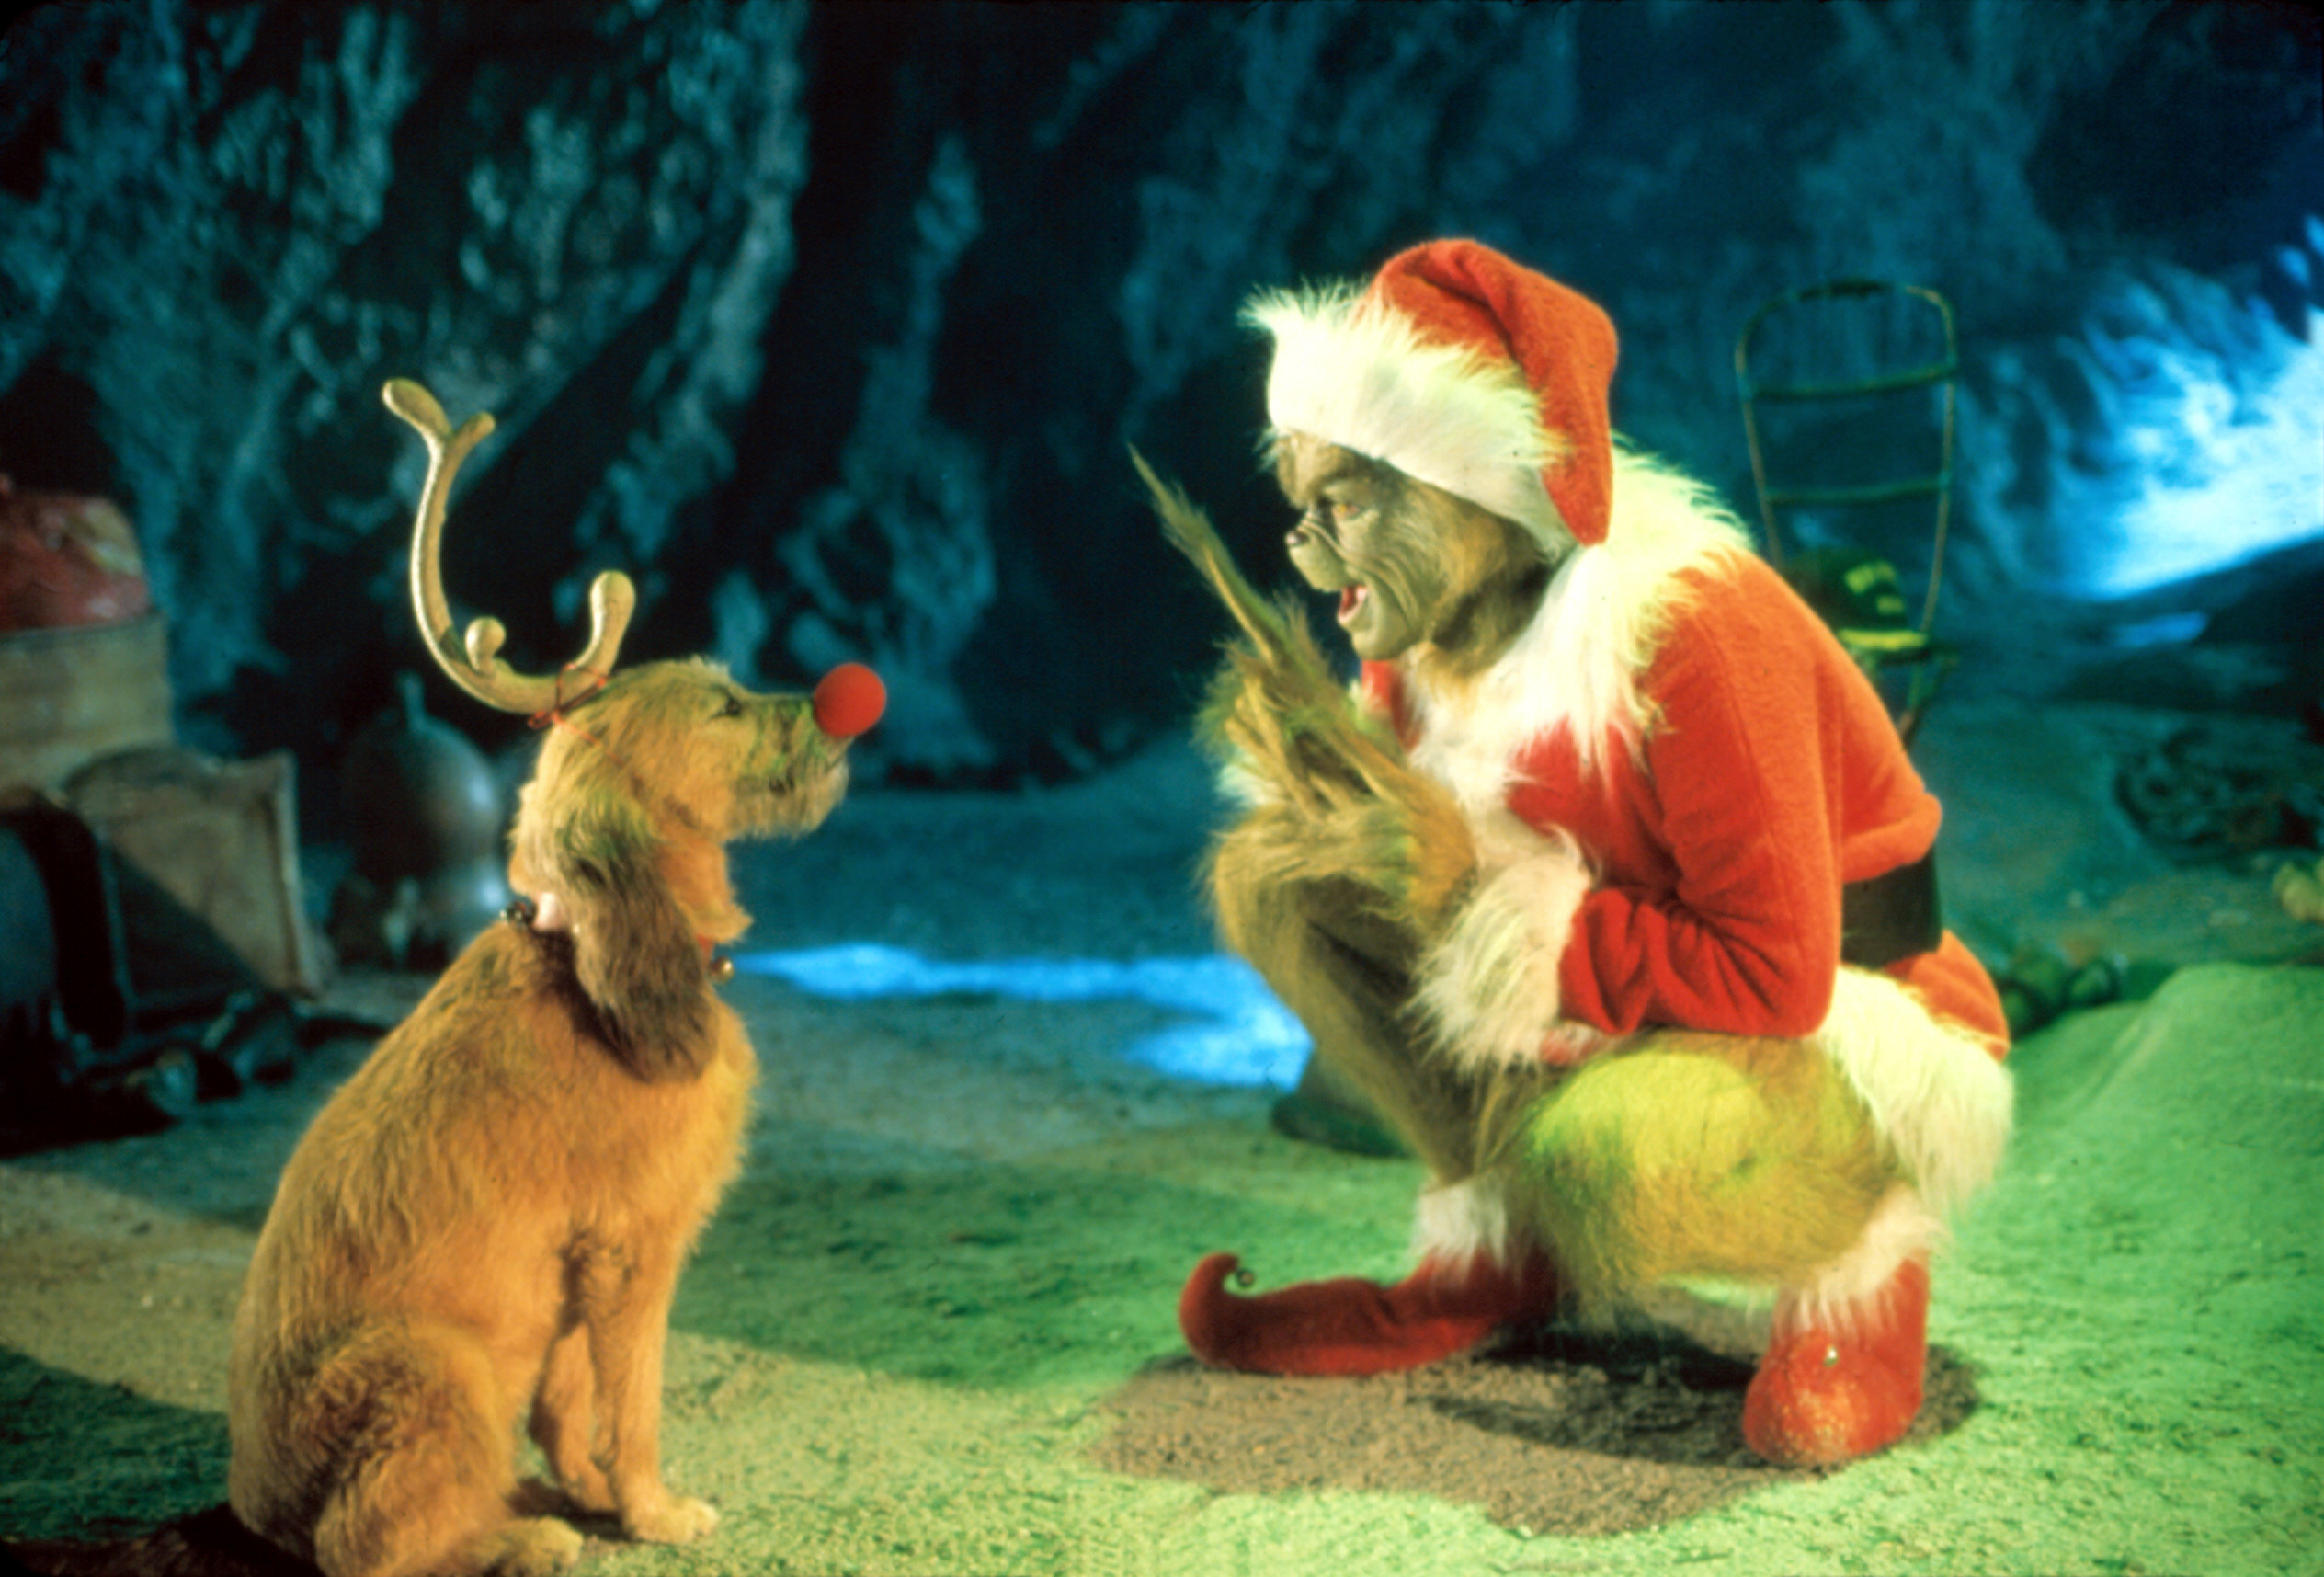 Photo of the Grinch dressed as Santa talking to his dog